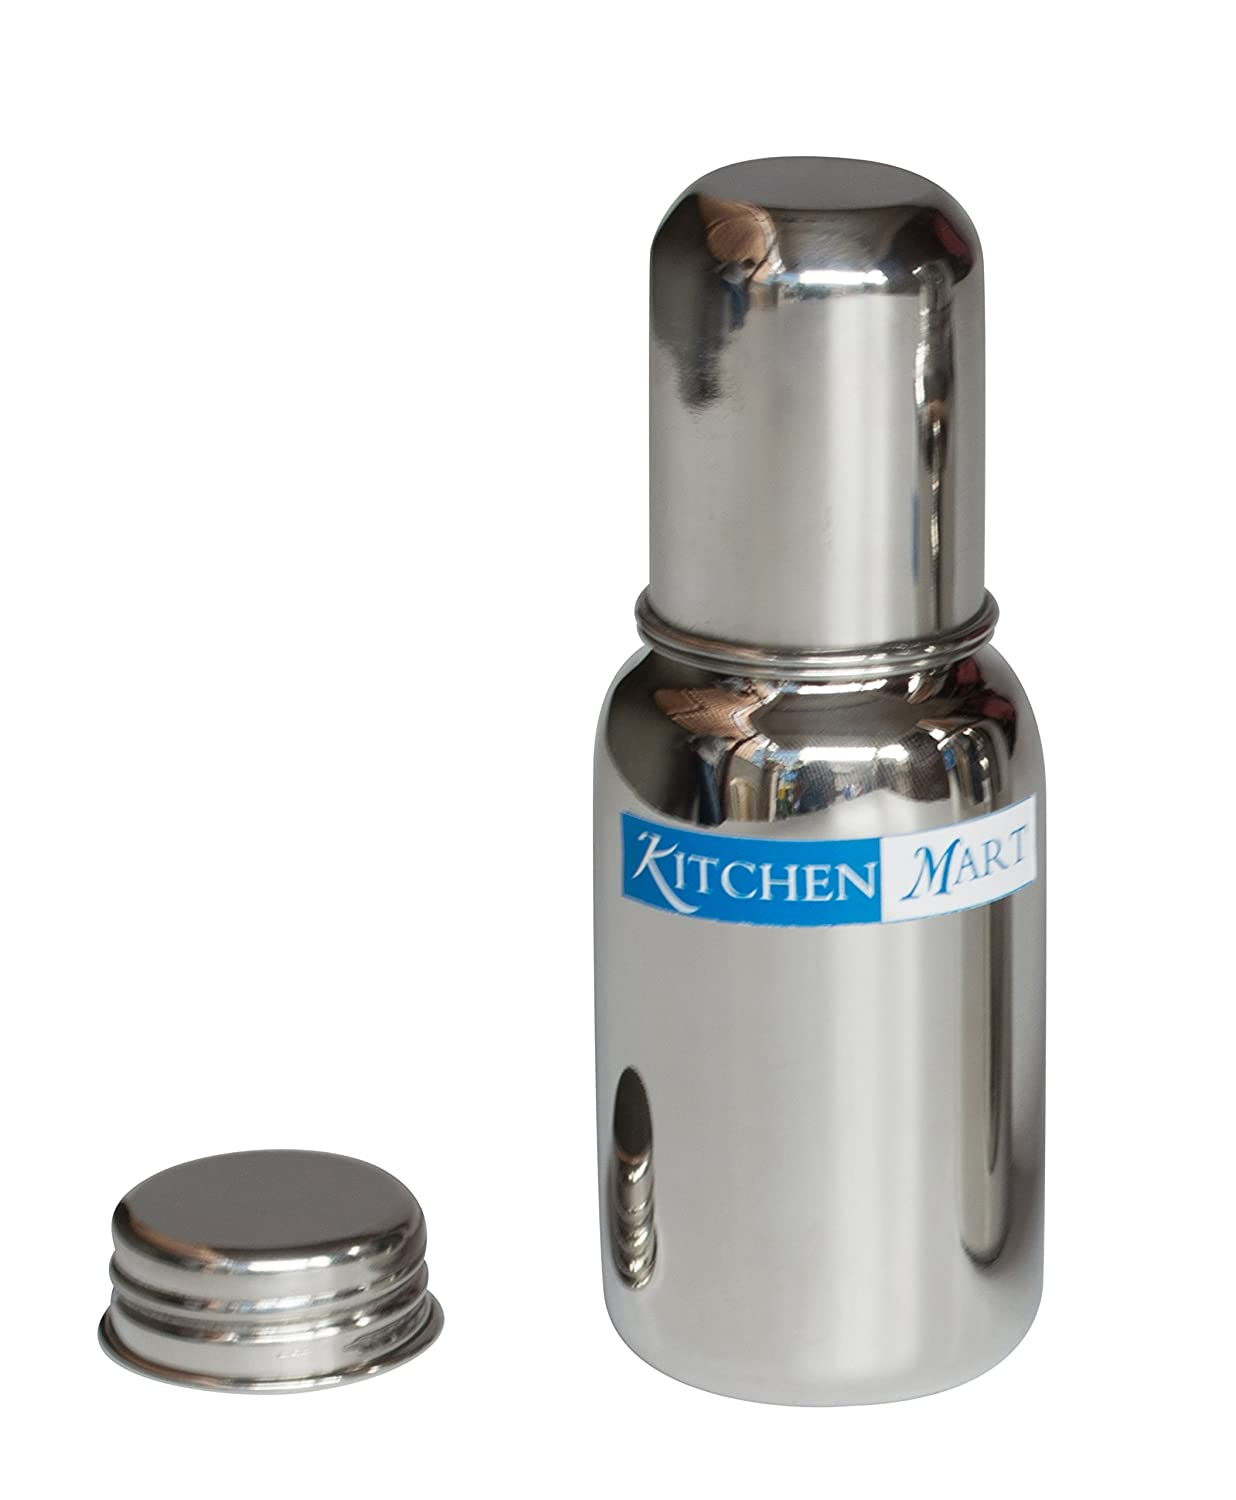 Buy Kitchen Mart Stainless Steel Baby Feeding Bottle 225ml Online at ...